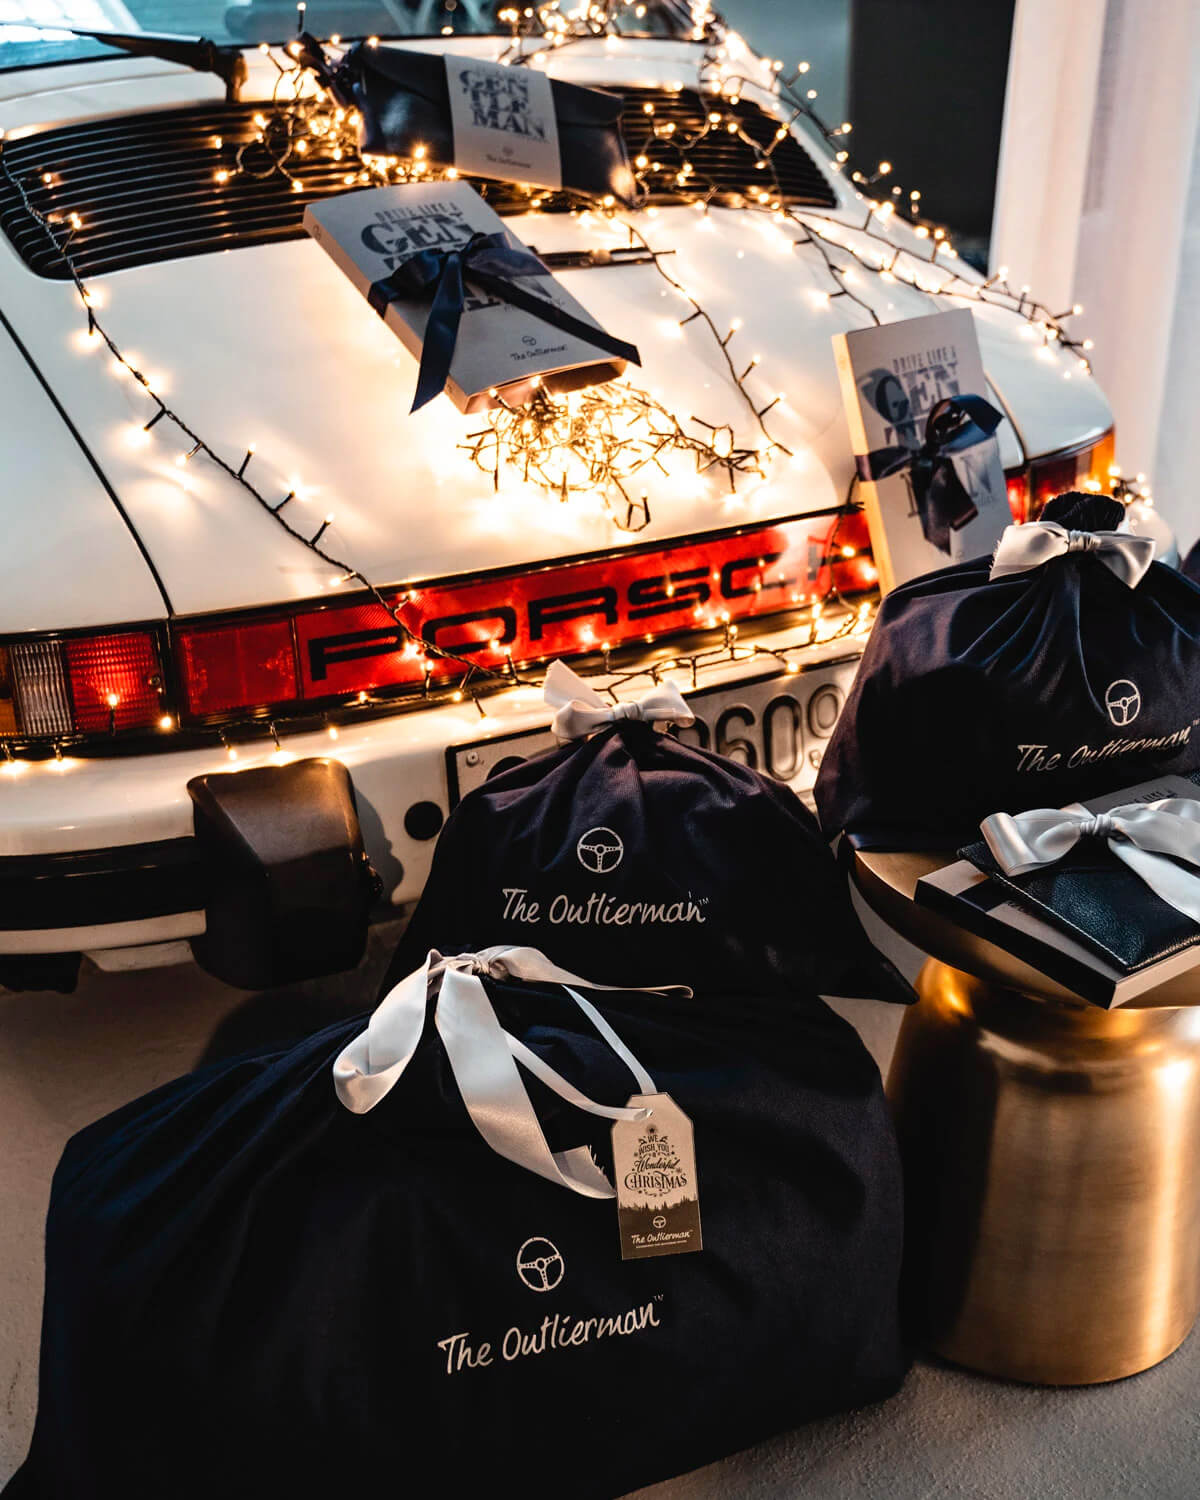 Classic Porsche 911 and The Outlierman Christmas gifts